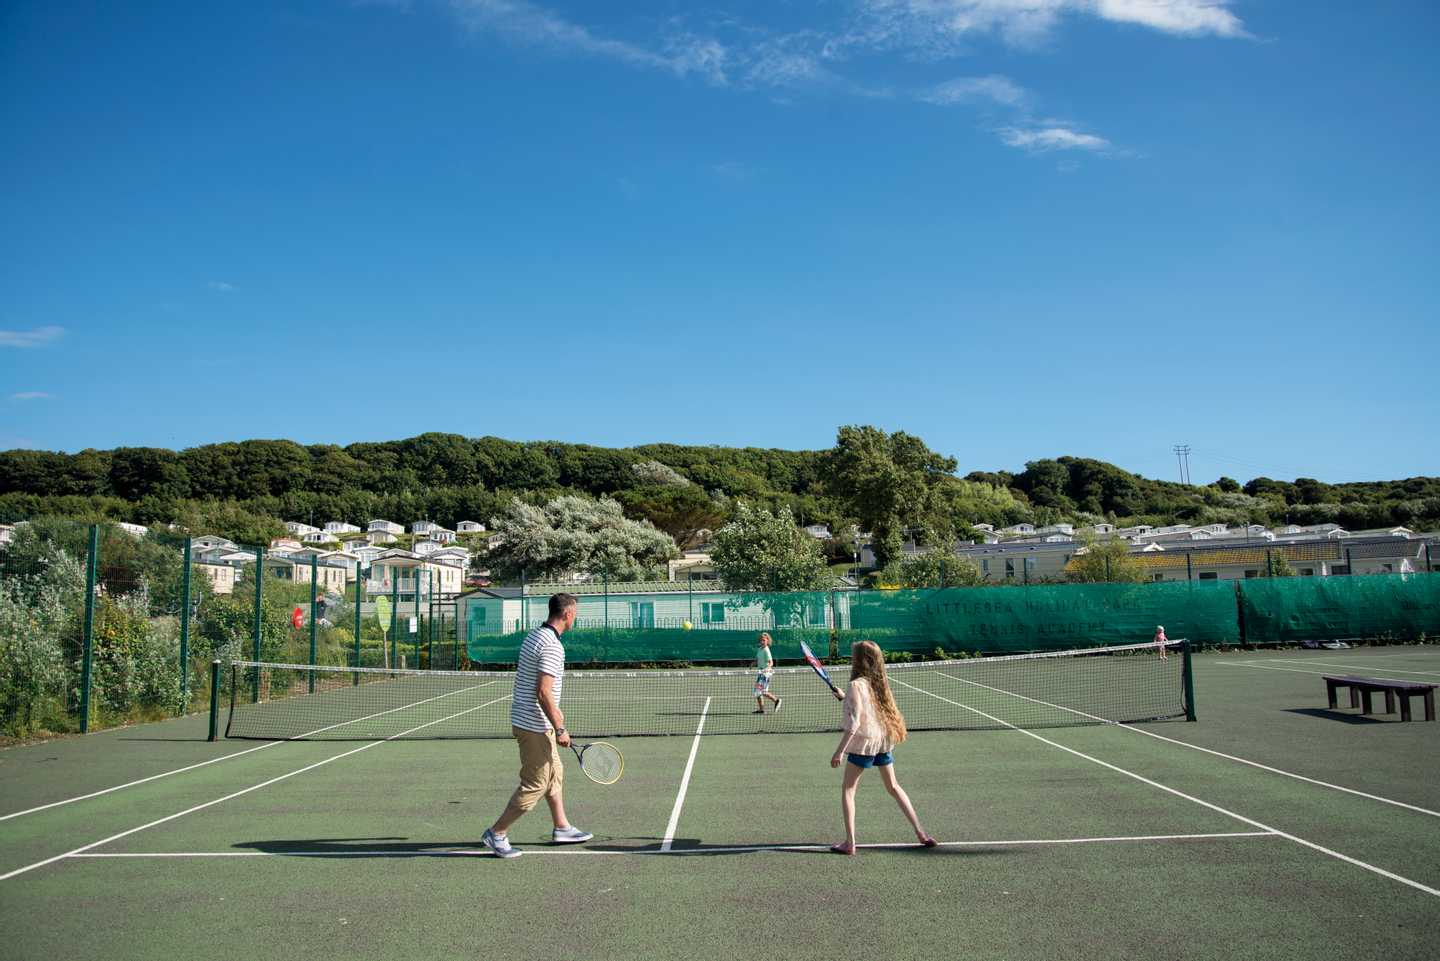 A family playing tennis on the tennis courts